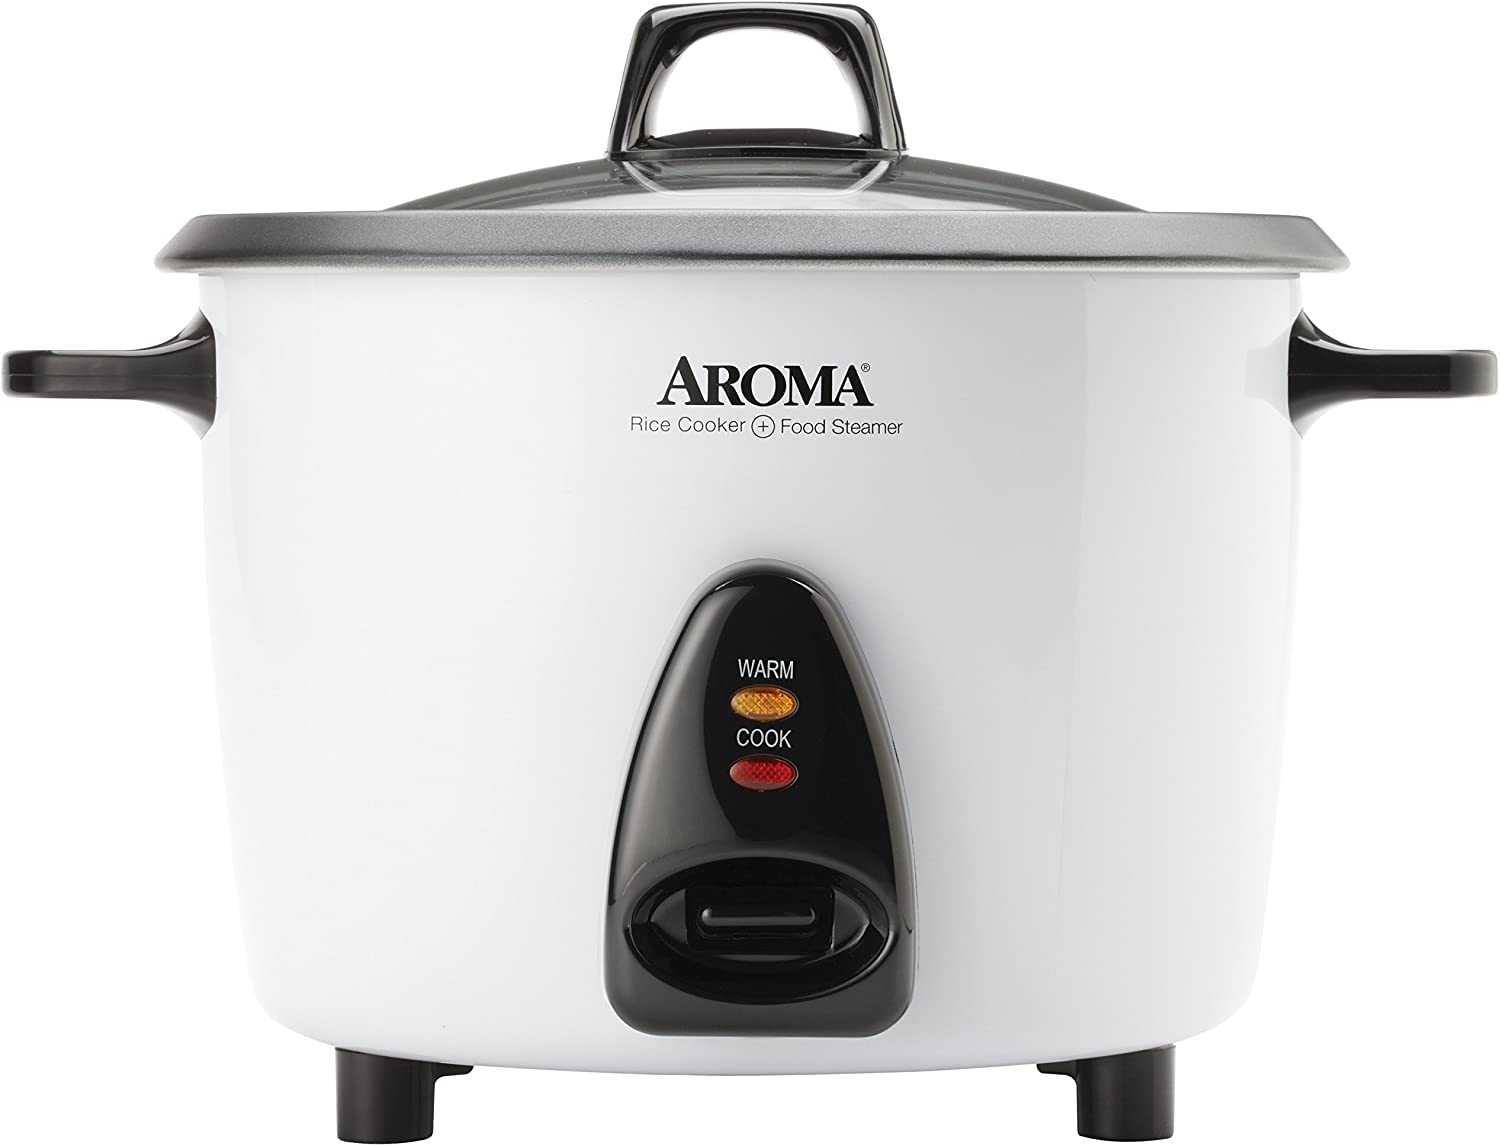 Aroma Housewares ARC-360-NGP 20-Cup Pot-Style Rice Cooker Food Steamer, White